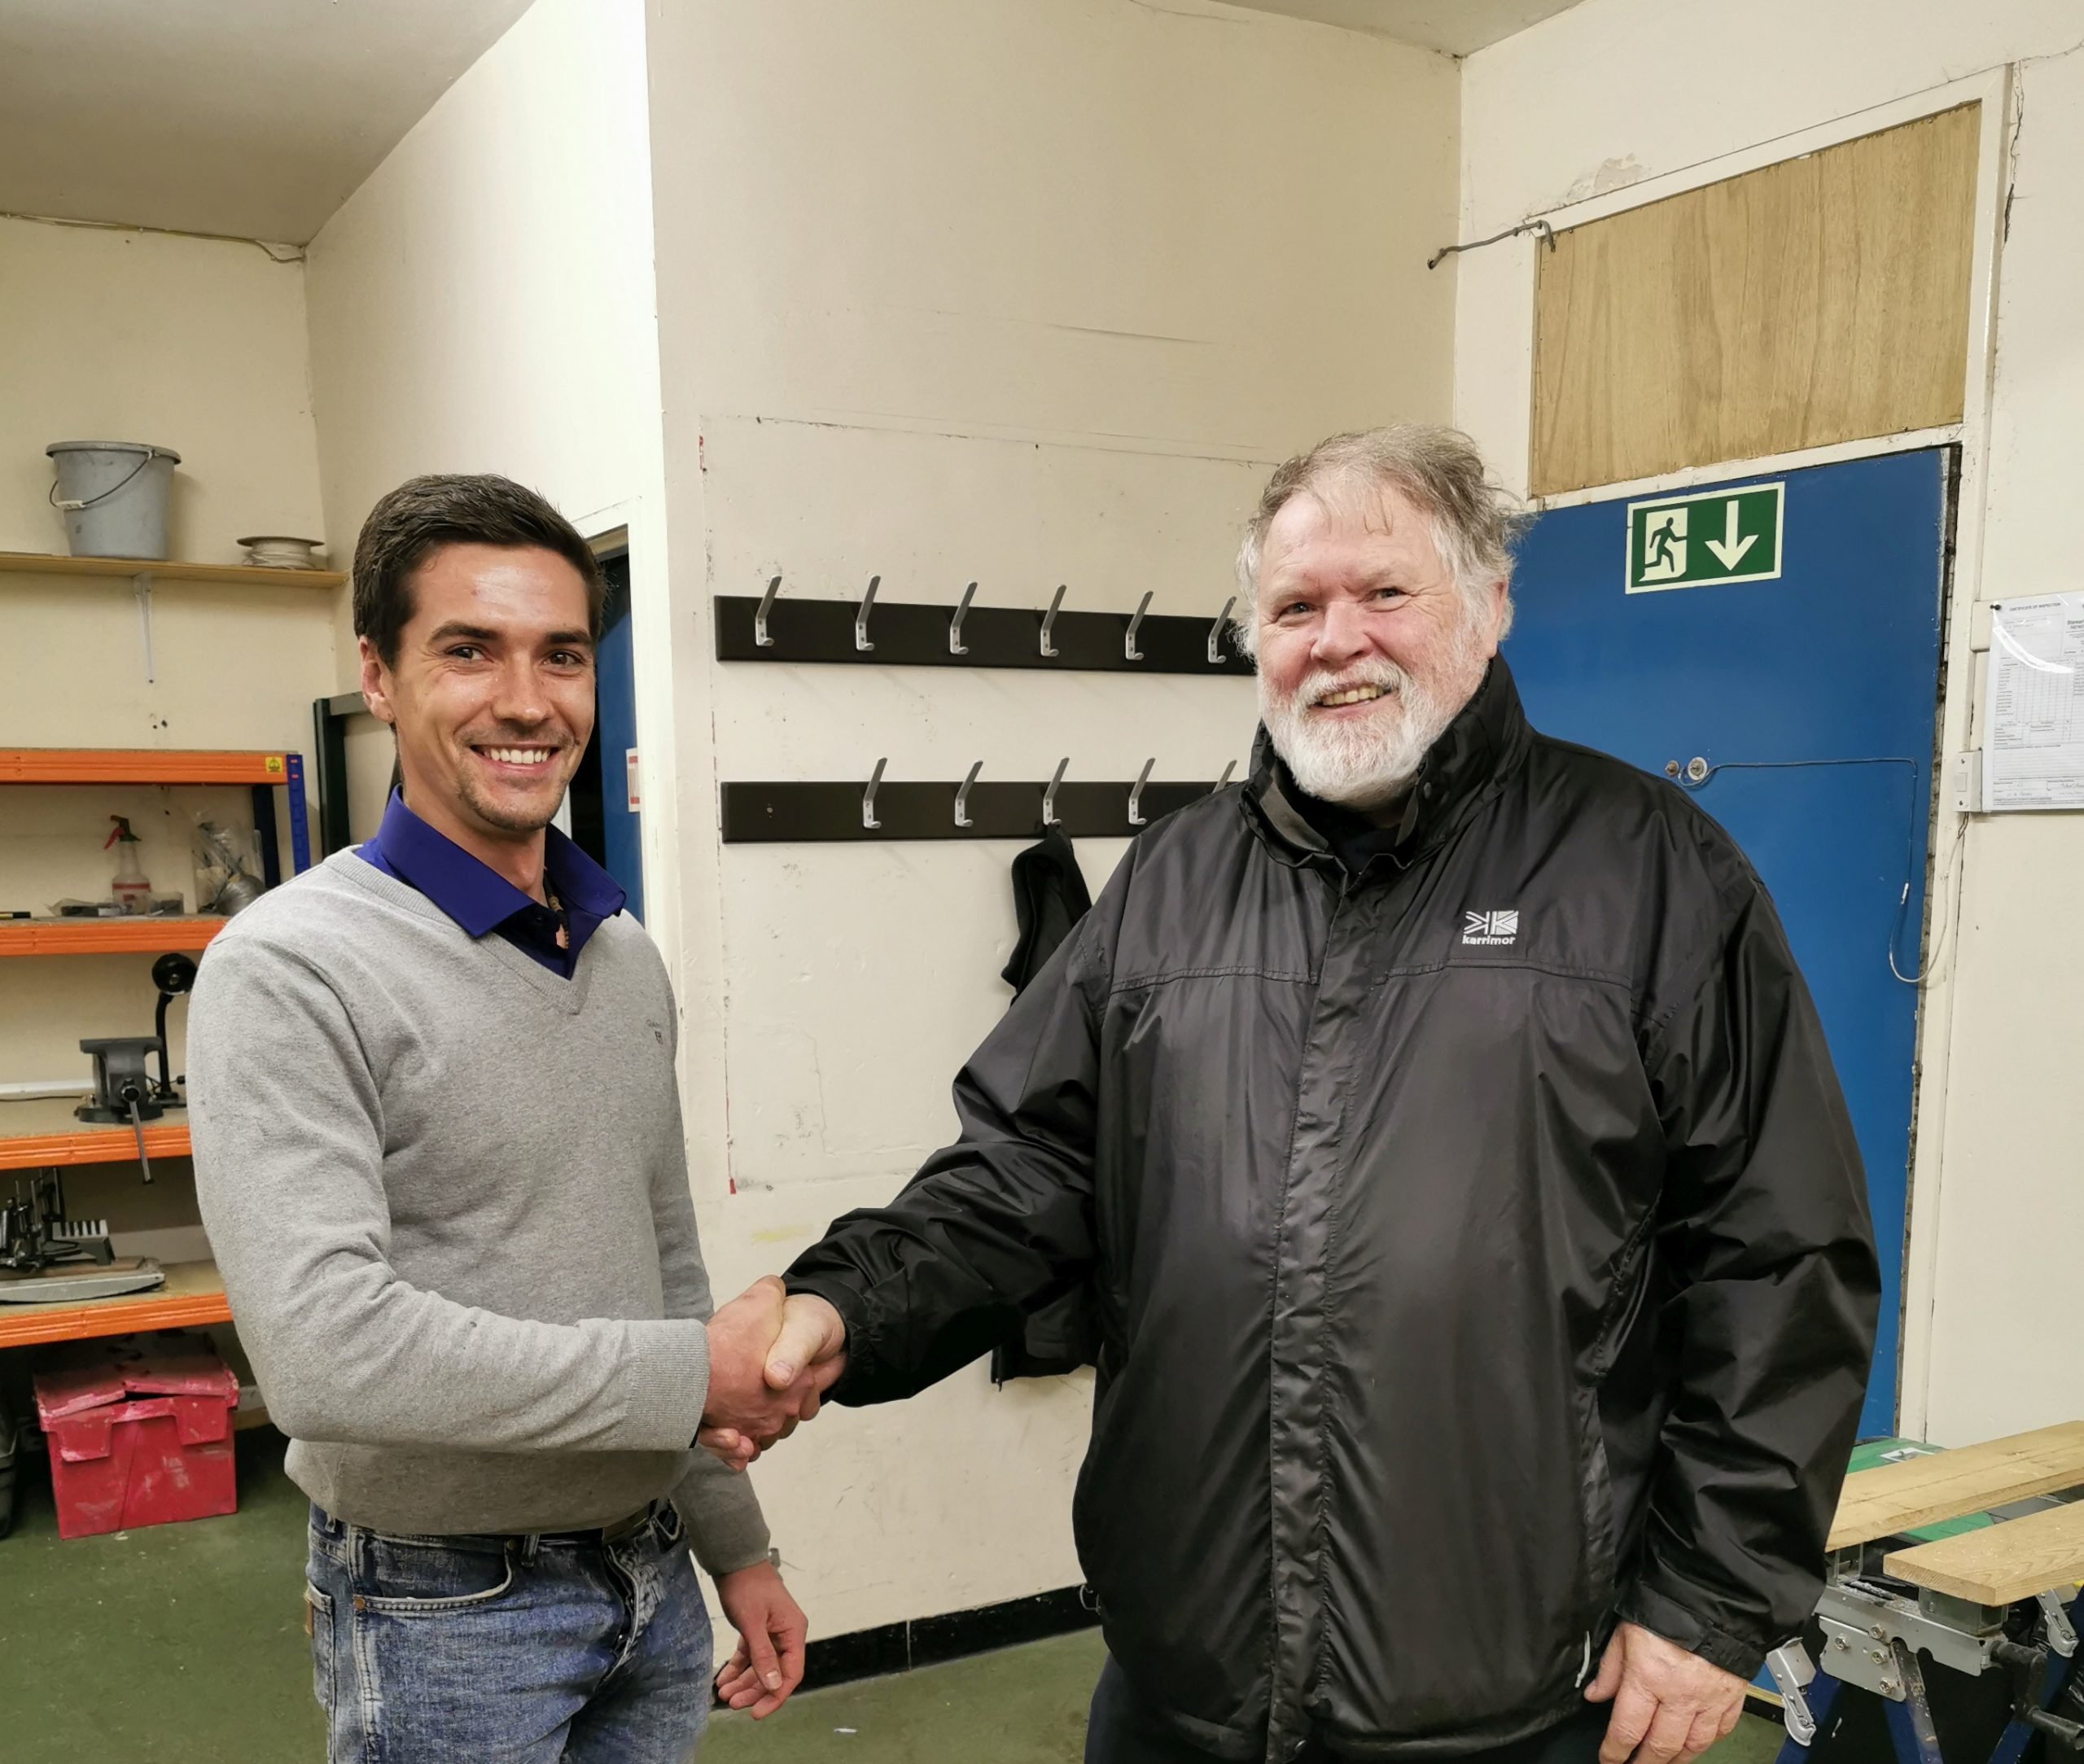 Primo models director shaking hand with the Dundee Club chariman.